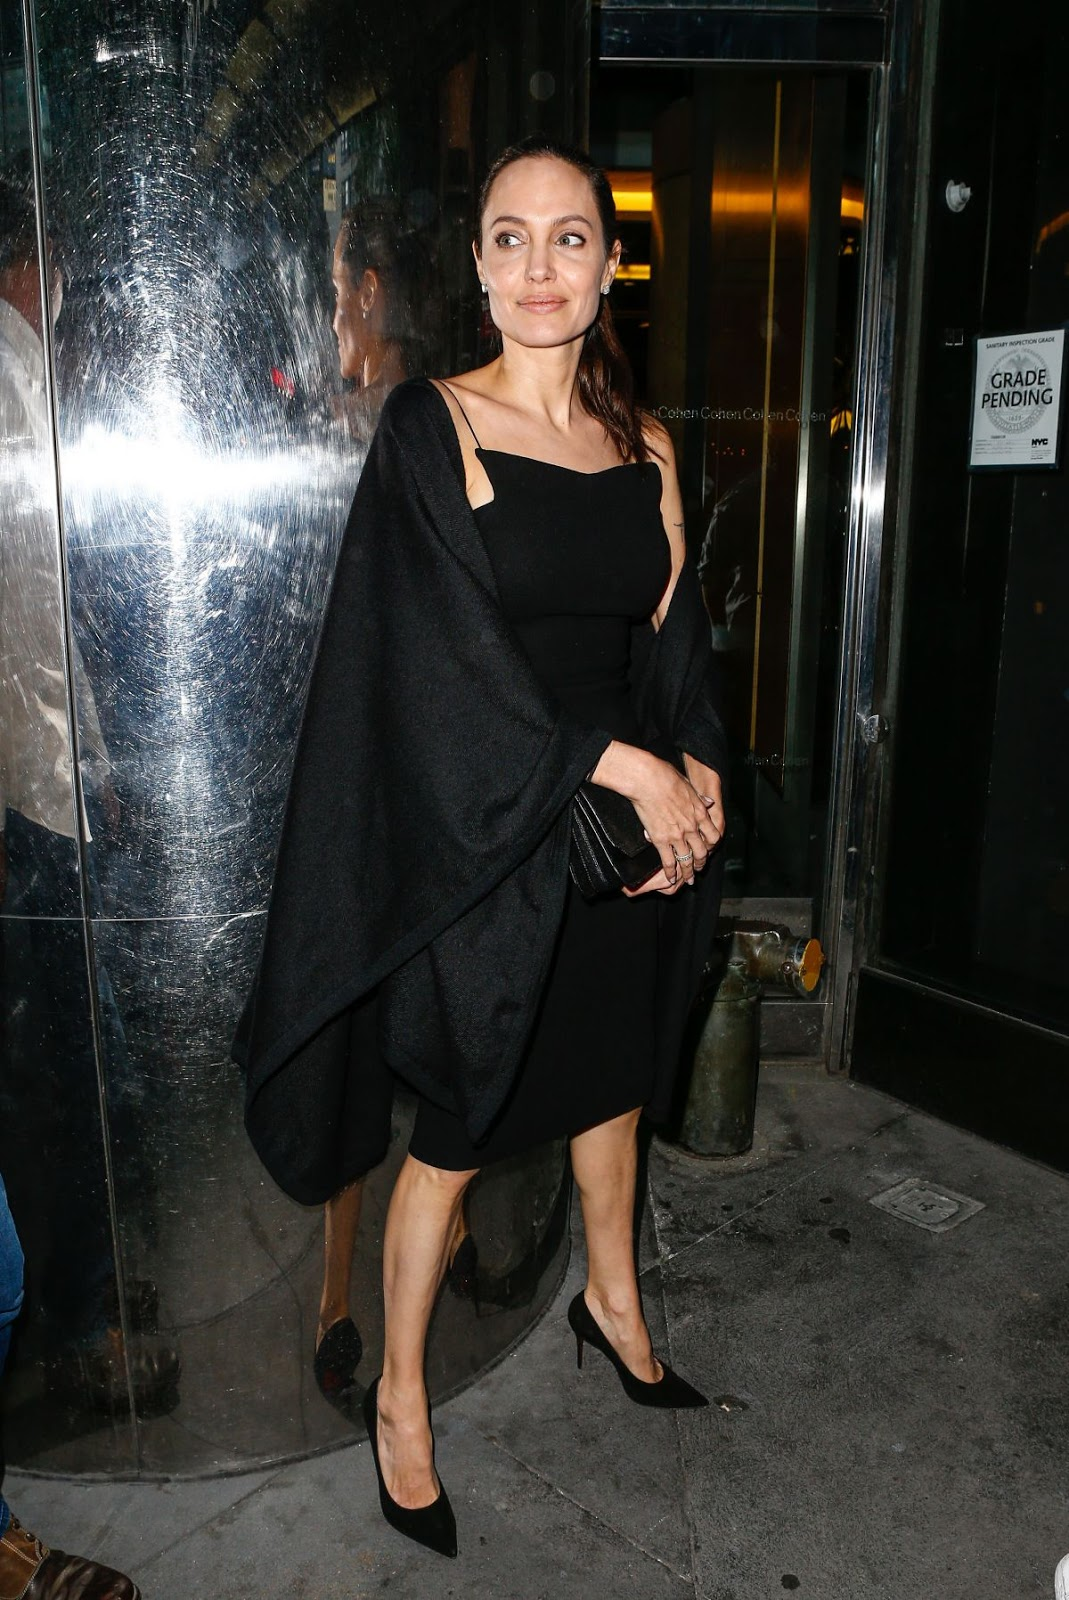 HQ Photos of Angelina Jolie in Black Dress Out For Dinner In New York